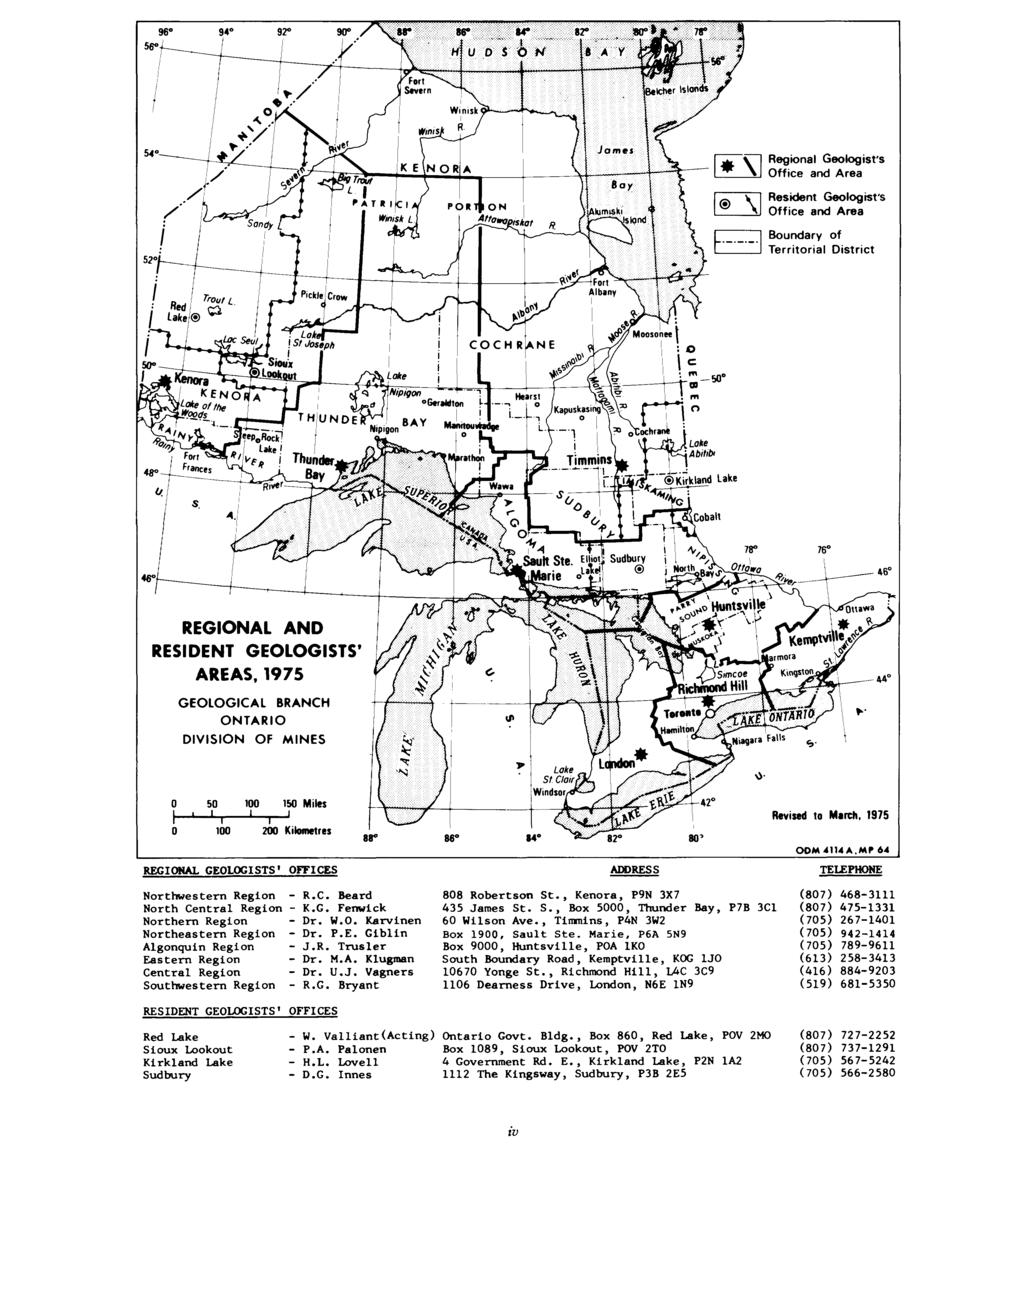 Regional Geologist's Office and Area Resident Geologist's Office and Area Boundary of Territorial District REGIONAL AND RESIDENT GEOLOGISTS' AREAS, GEOLOGICAL BRANCH ONTARIO DIVISION OF MINES 50 100